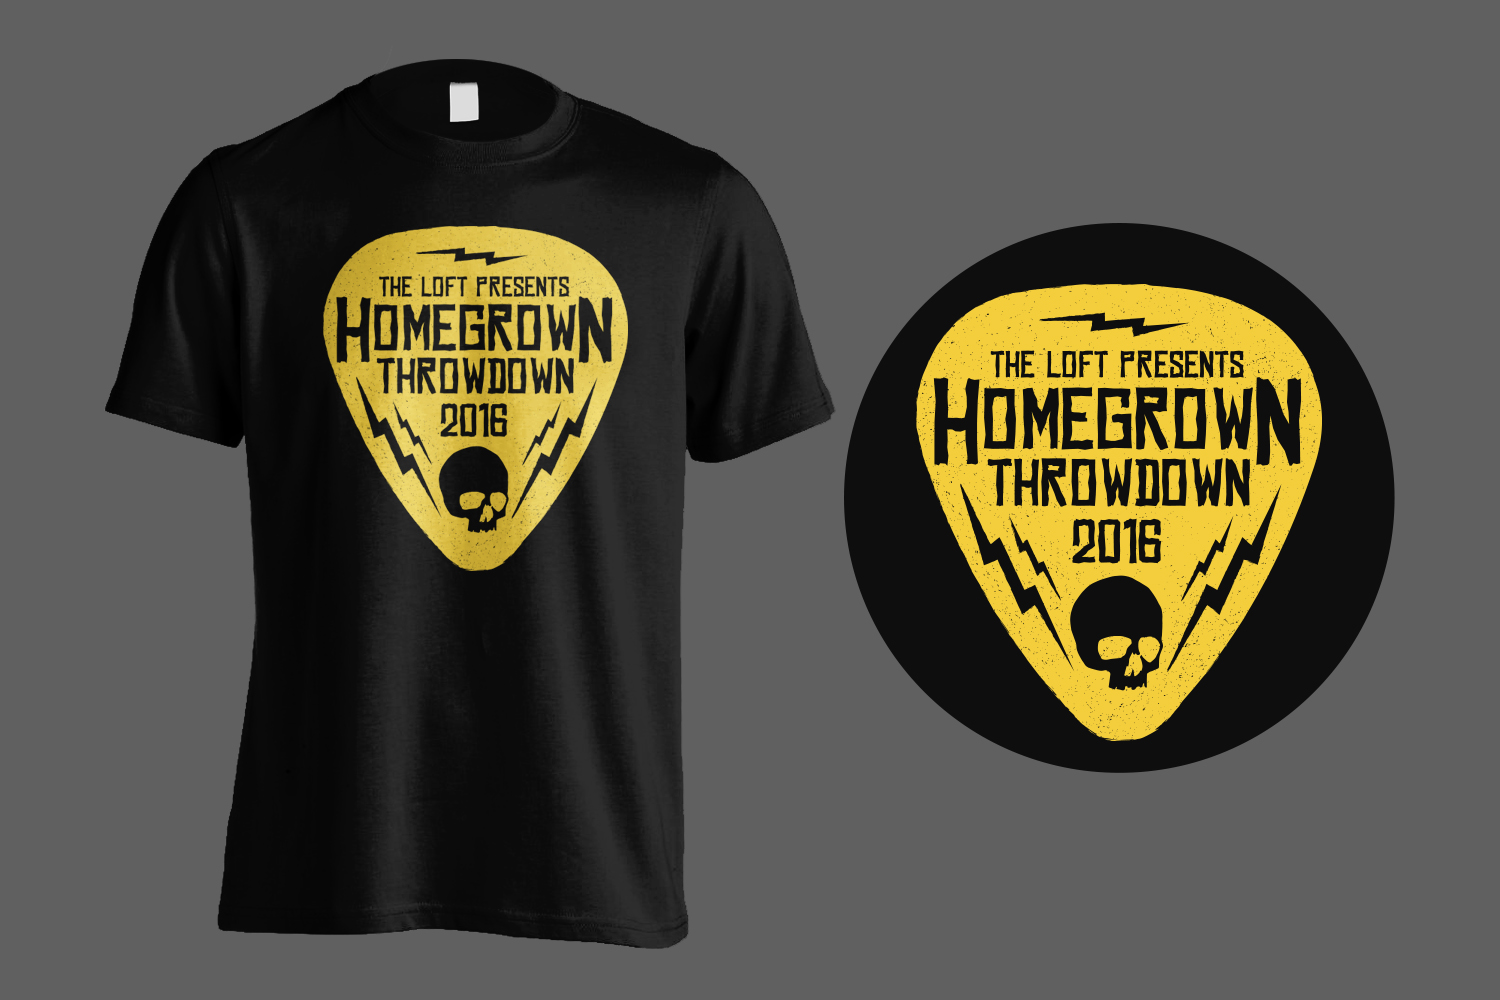 Homegrown Throwdown Tee Shirt